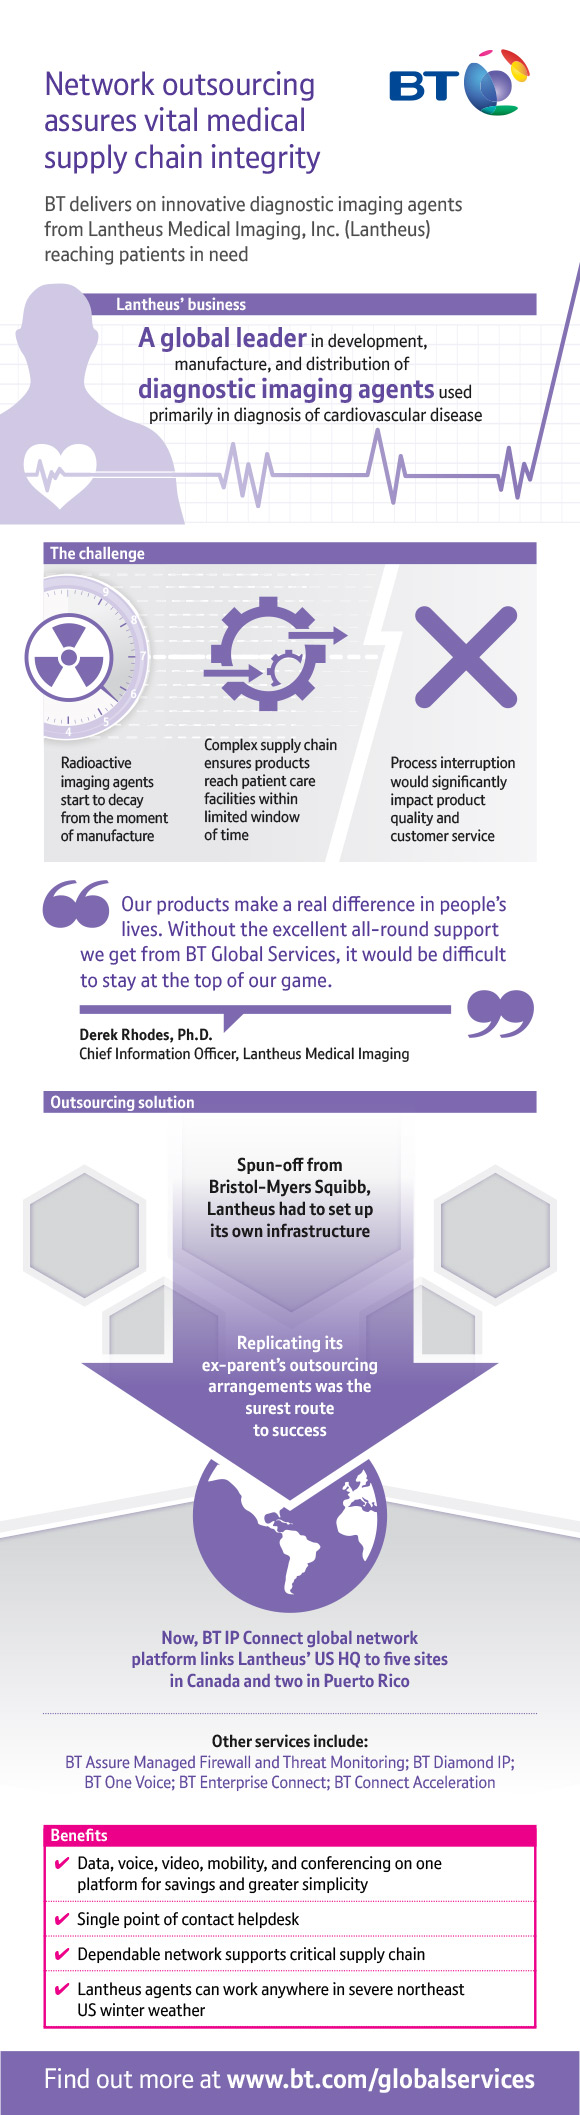 Network outsourcing assures vital medical supply chain integrity Infographic